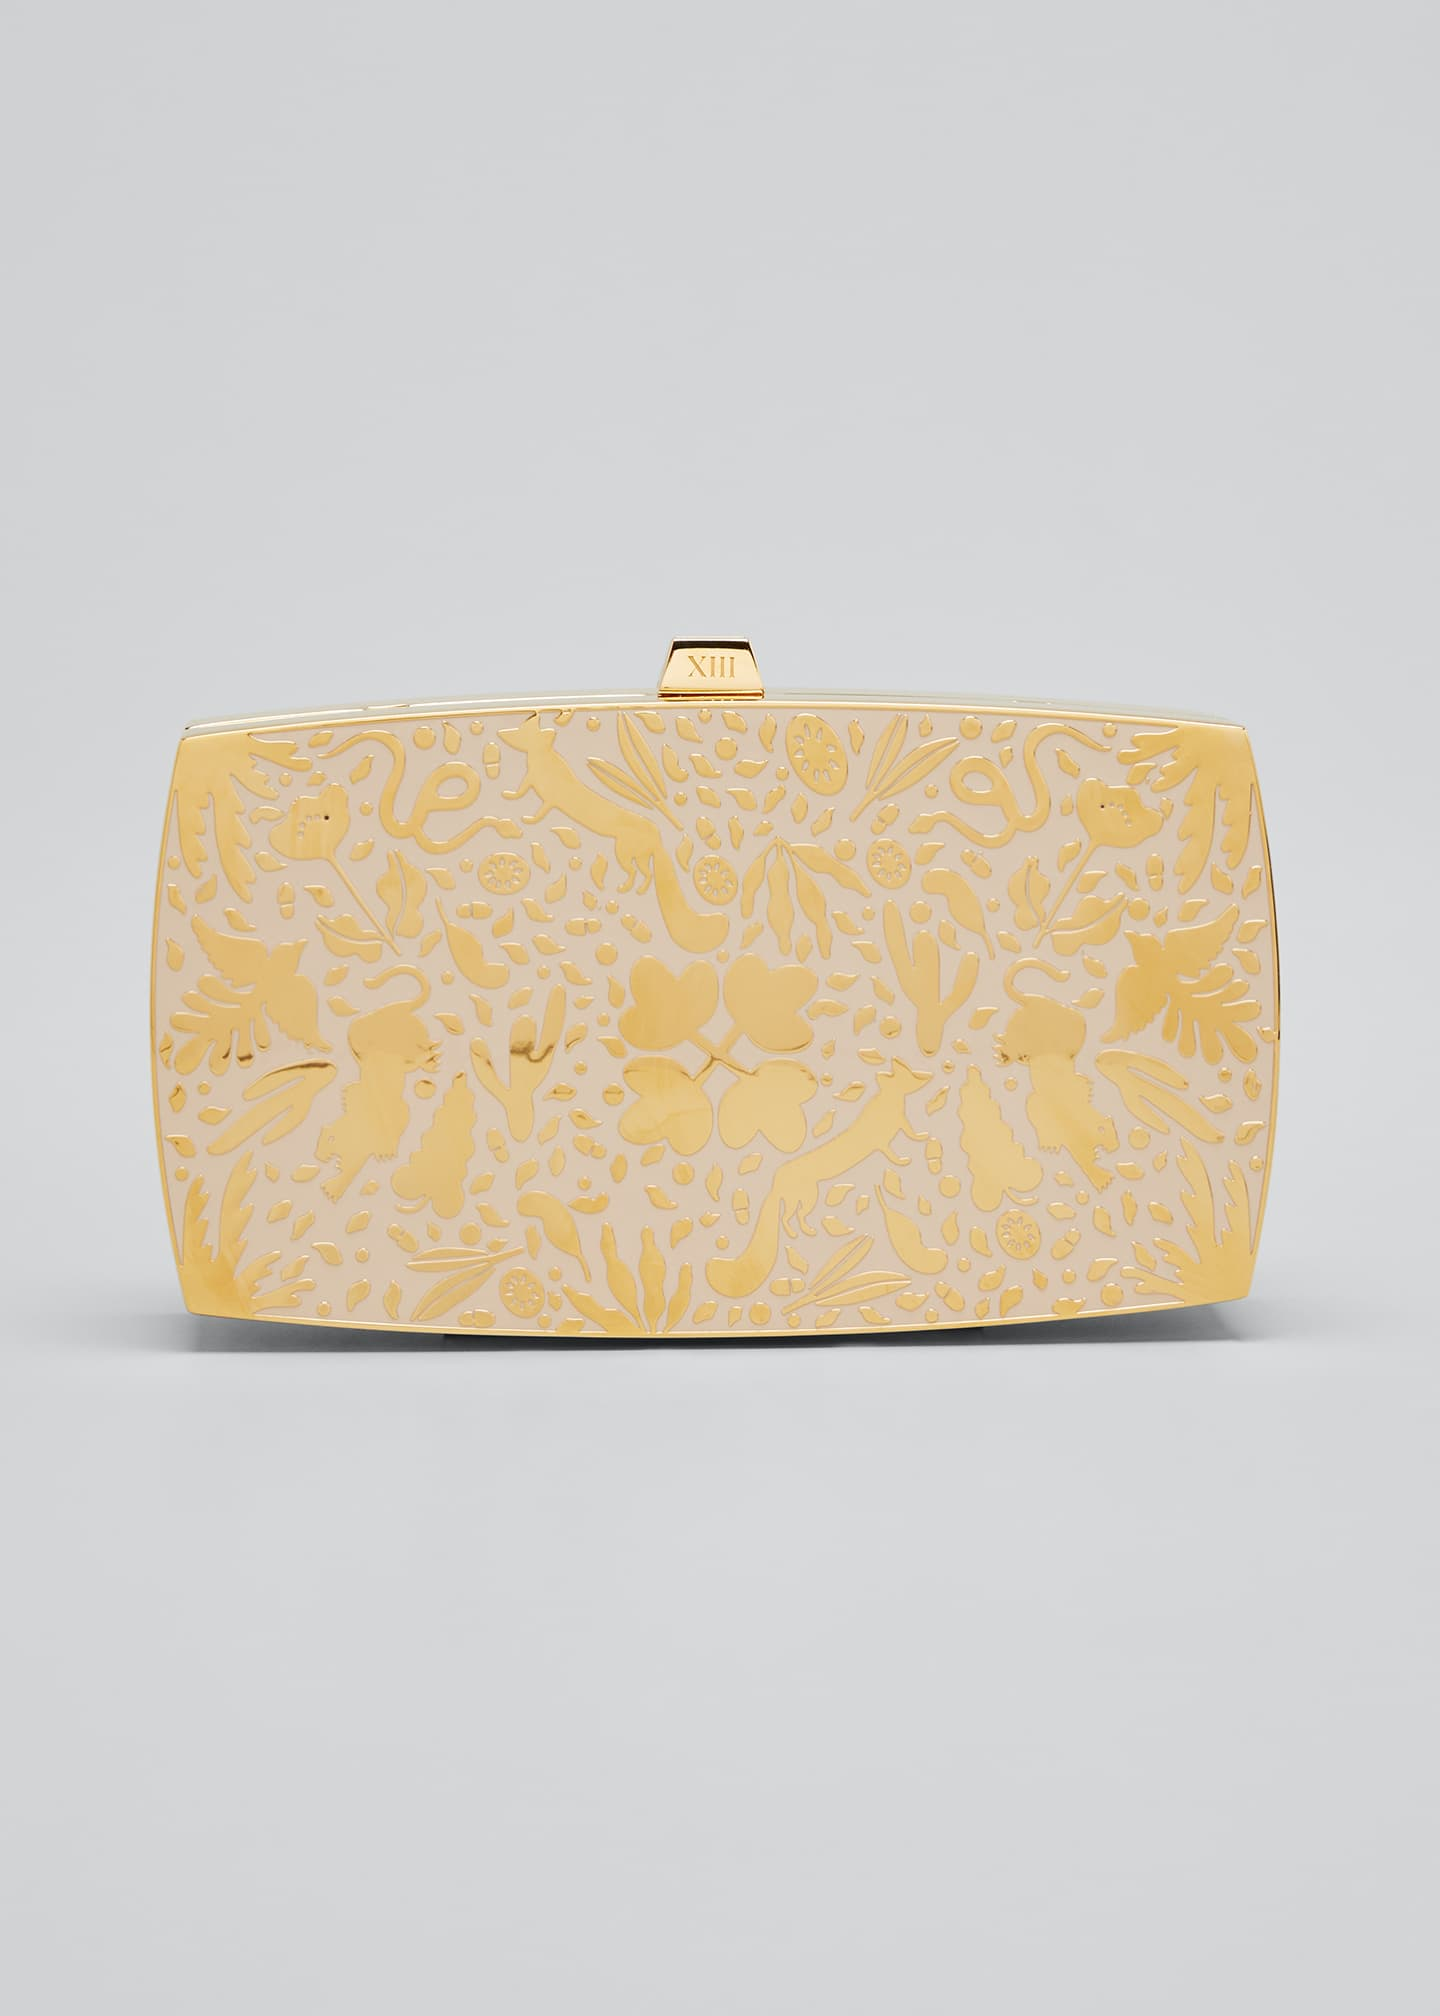 Image 1 of 5: The Wilderness Minaudiere Clutch Bag